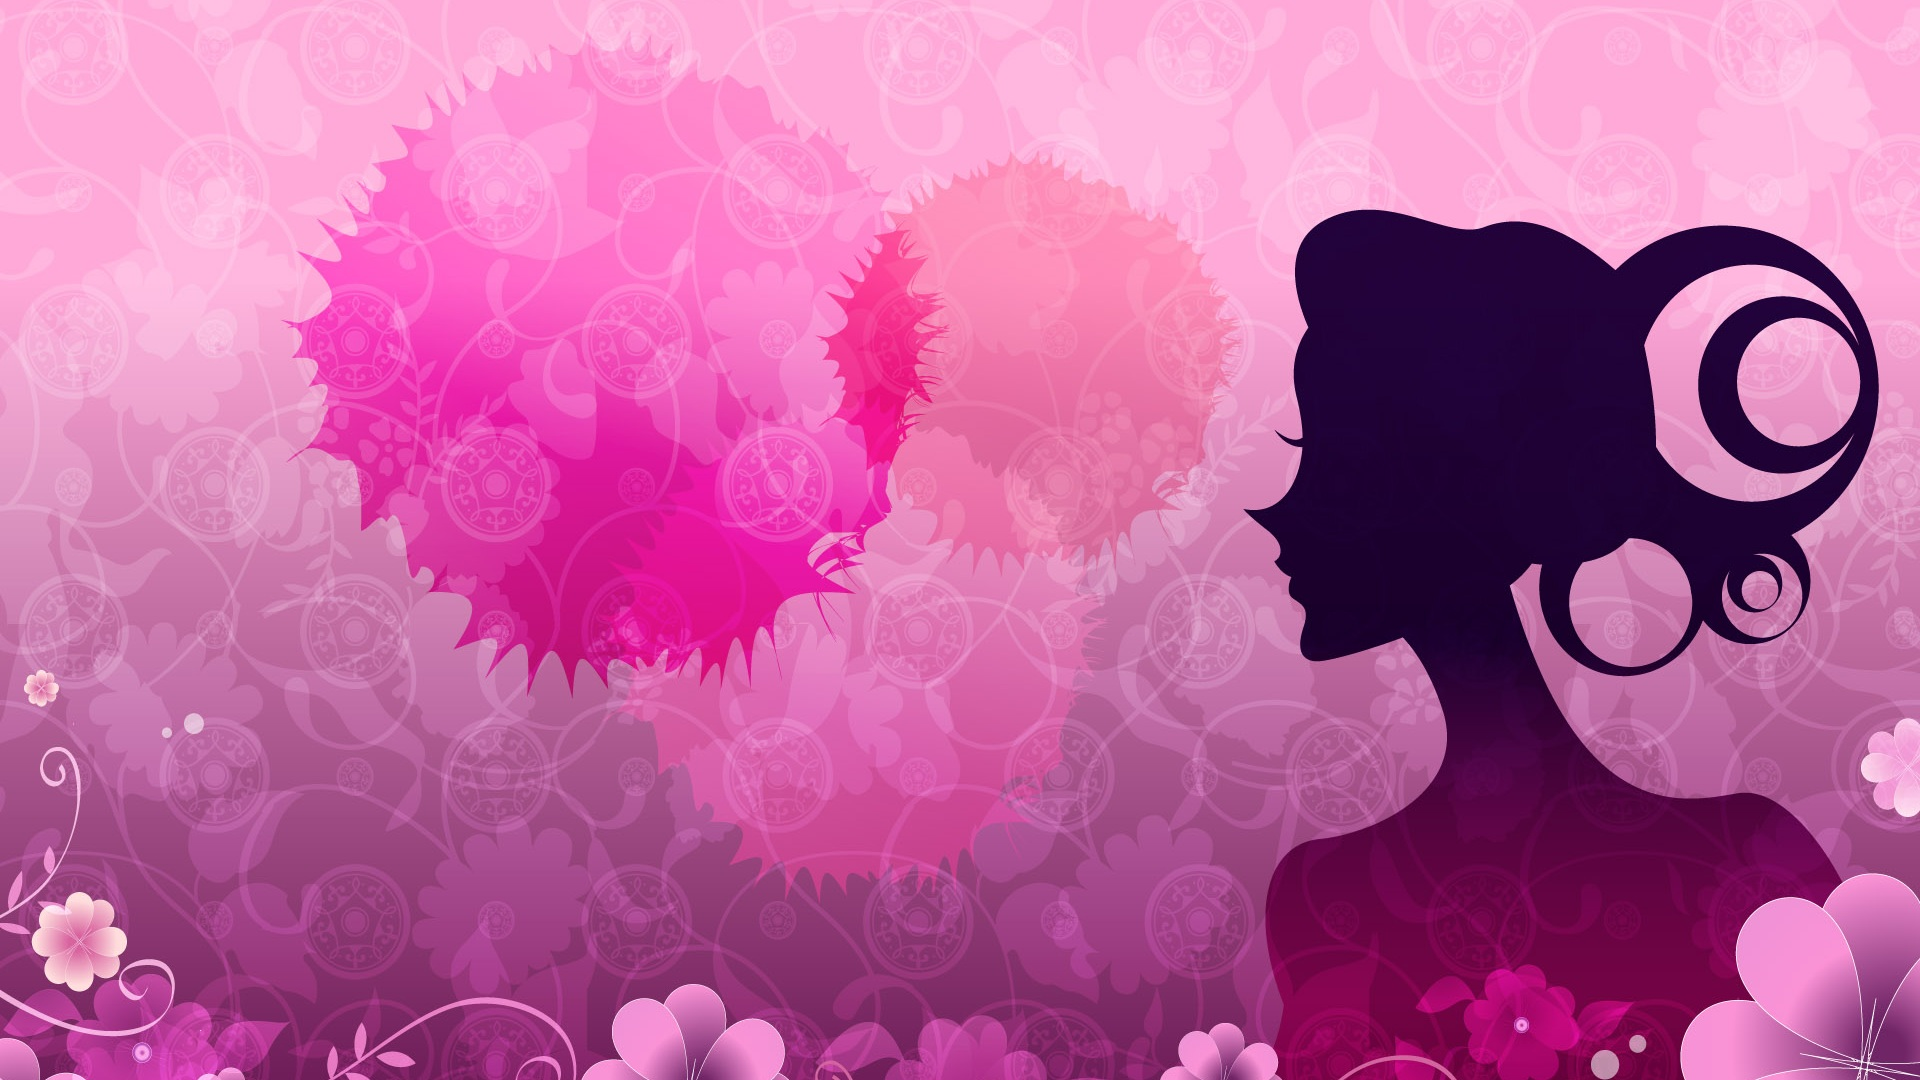 Cool girly wallpapers free download cool girly wallpapers voltagebd Images